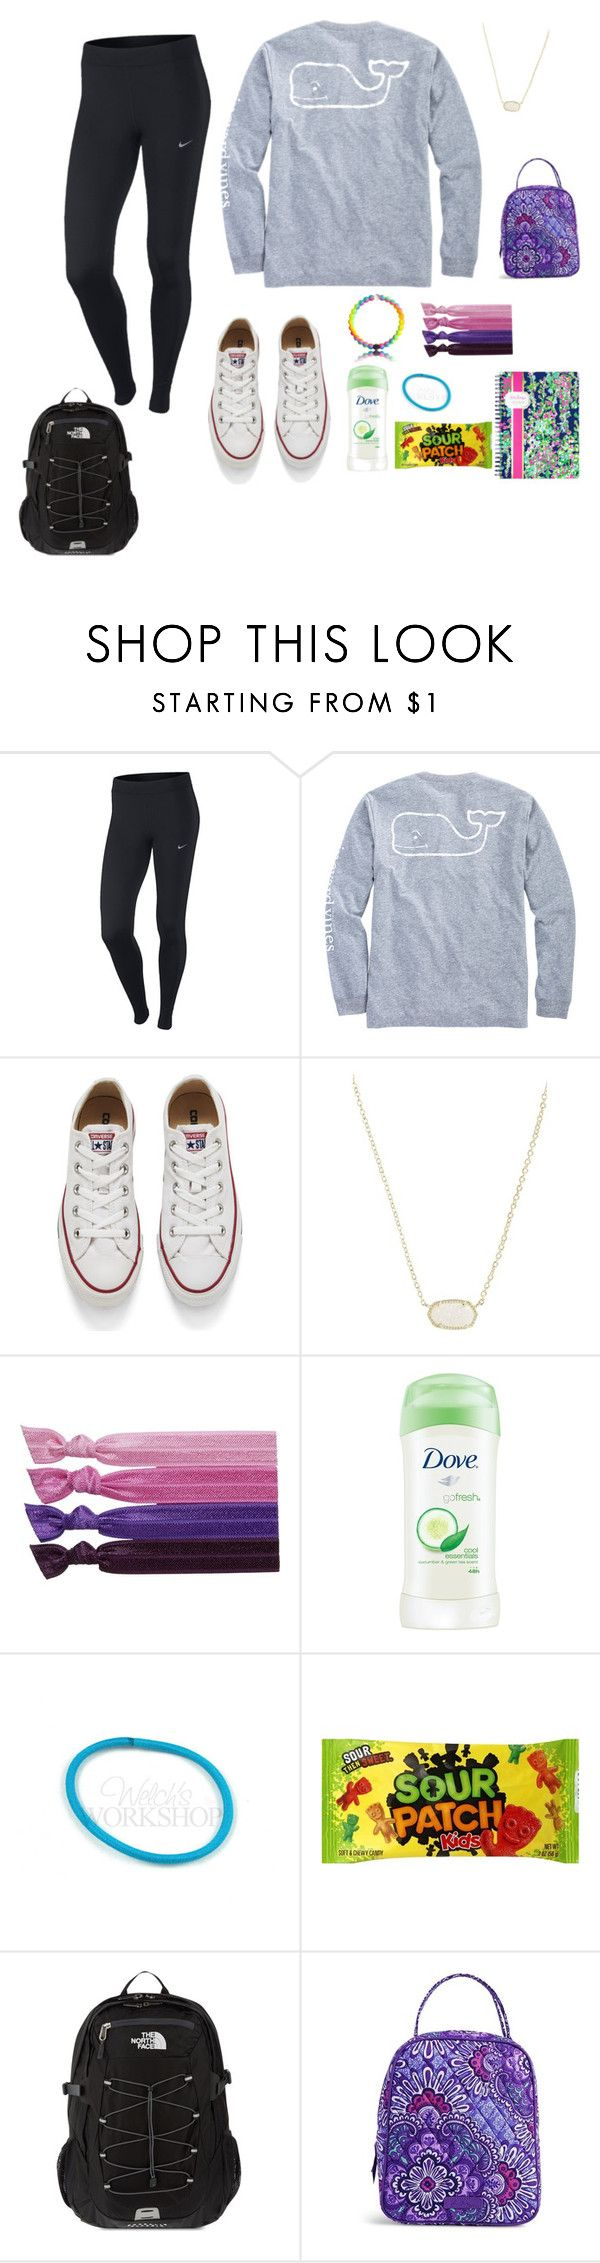 """Probably what I'm going to Wear Tomorrow"" by emmaychgee ❤ liked on Polyvore featuring NIKE, Vineyard Vines, Converse, Kendra Scott, Ribband, Dove, The North Face, Vera Bradley and Lilly Pulitzer"